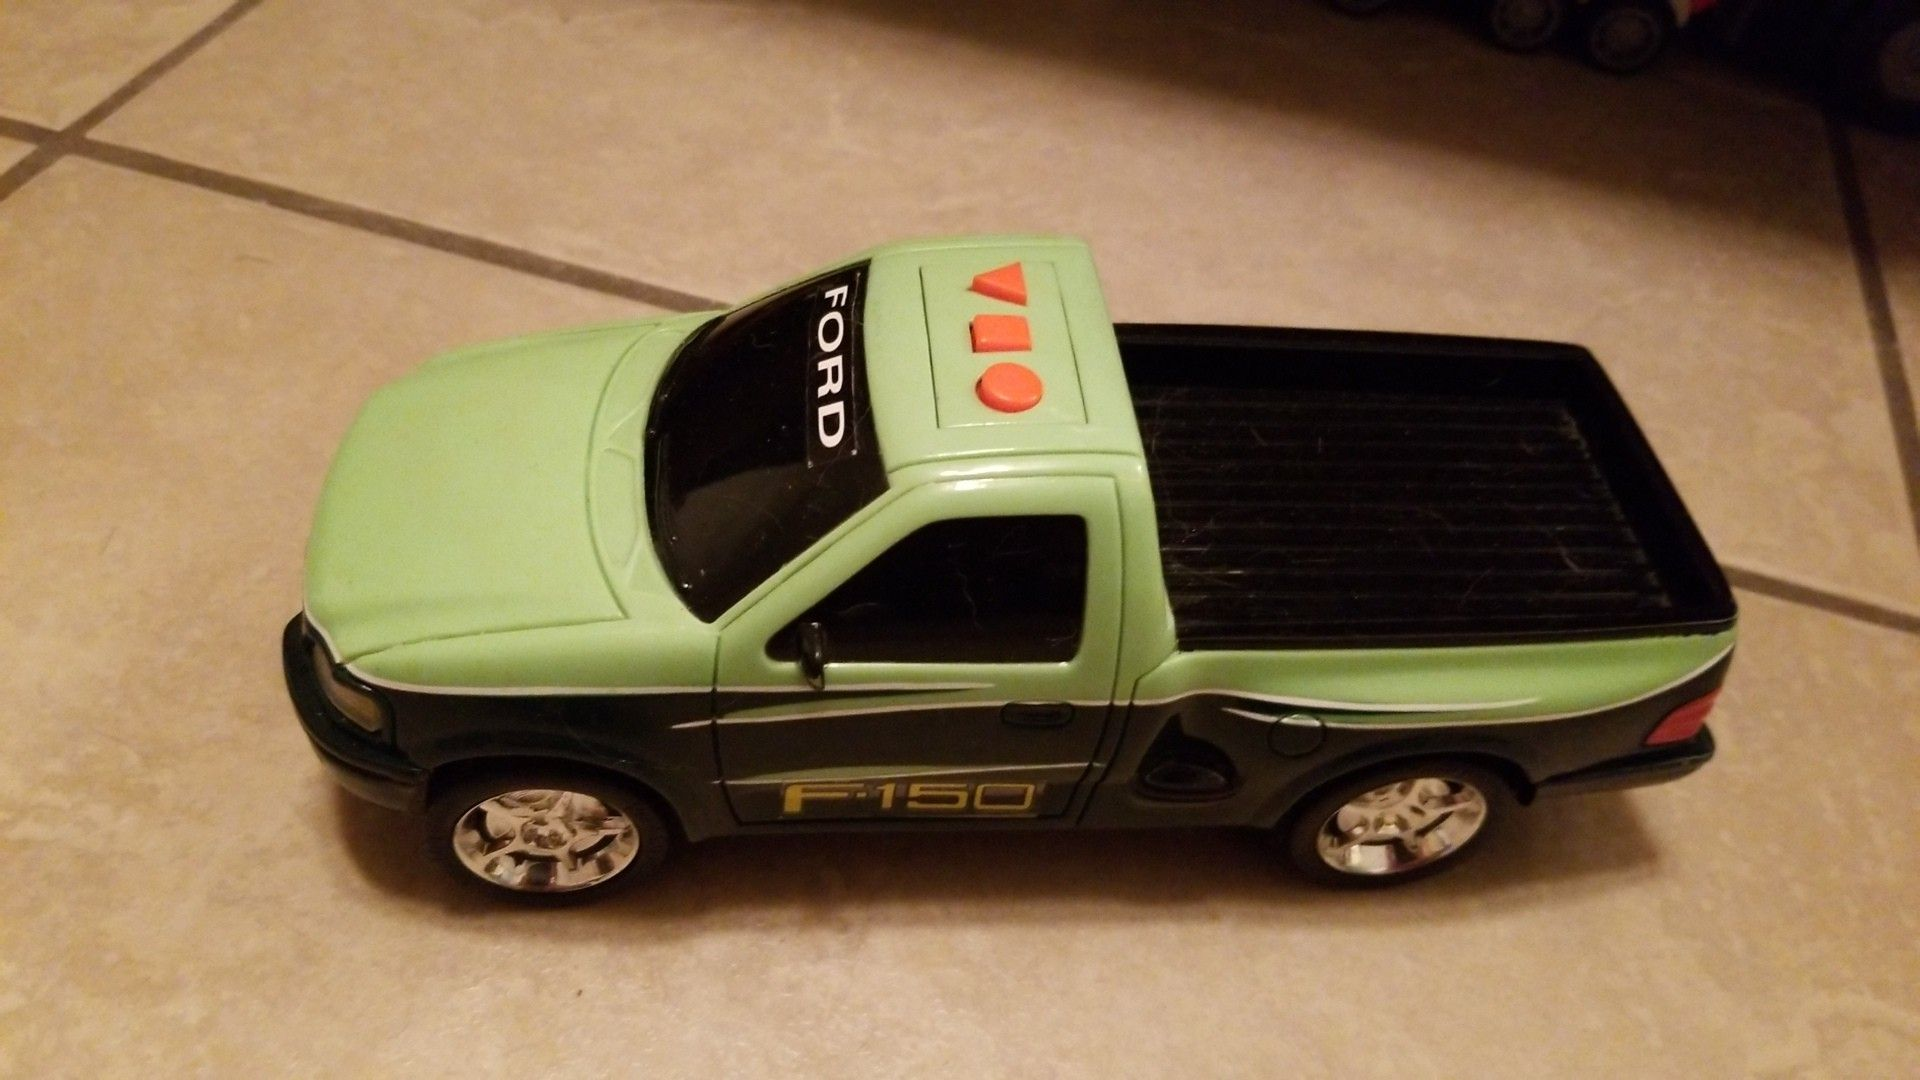 Toy State Road Rippers Hitch Go Toy Car Toys Hitched